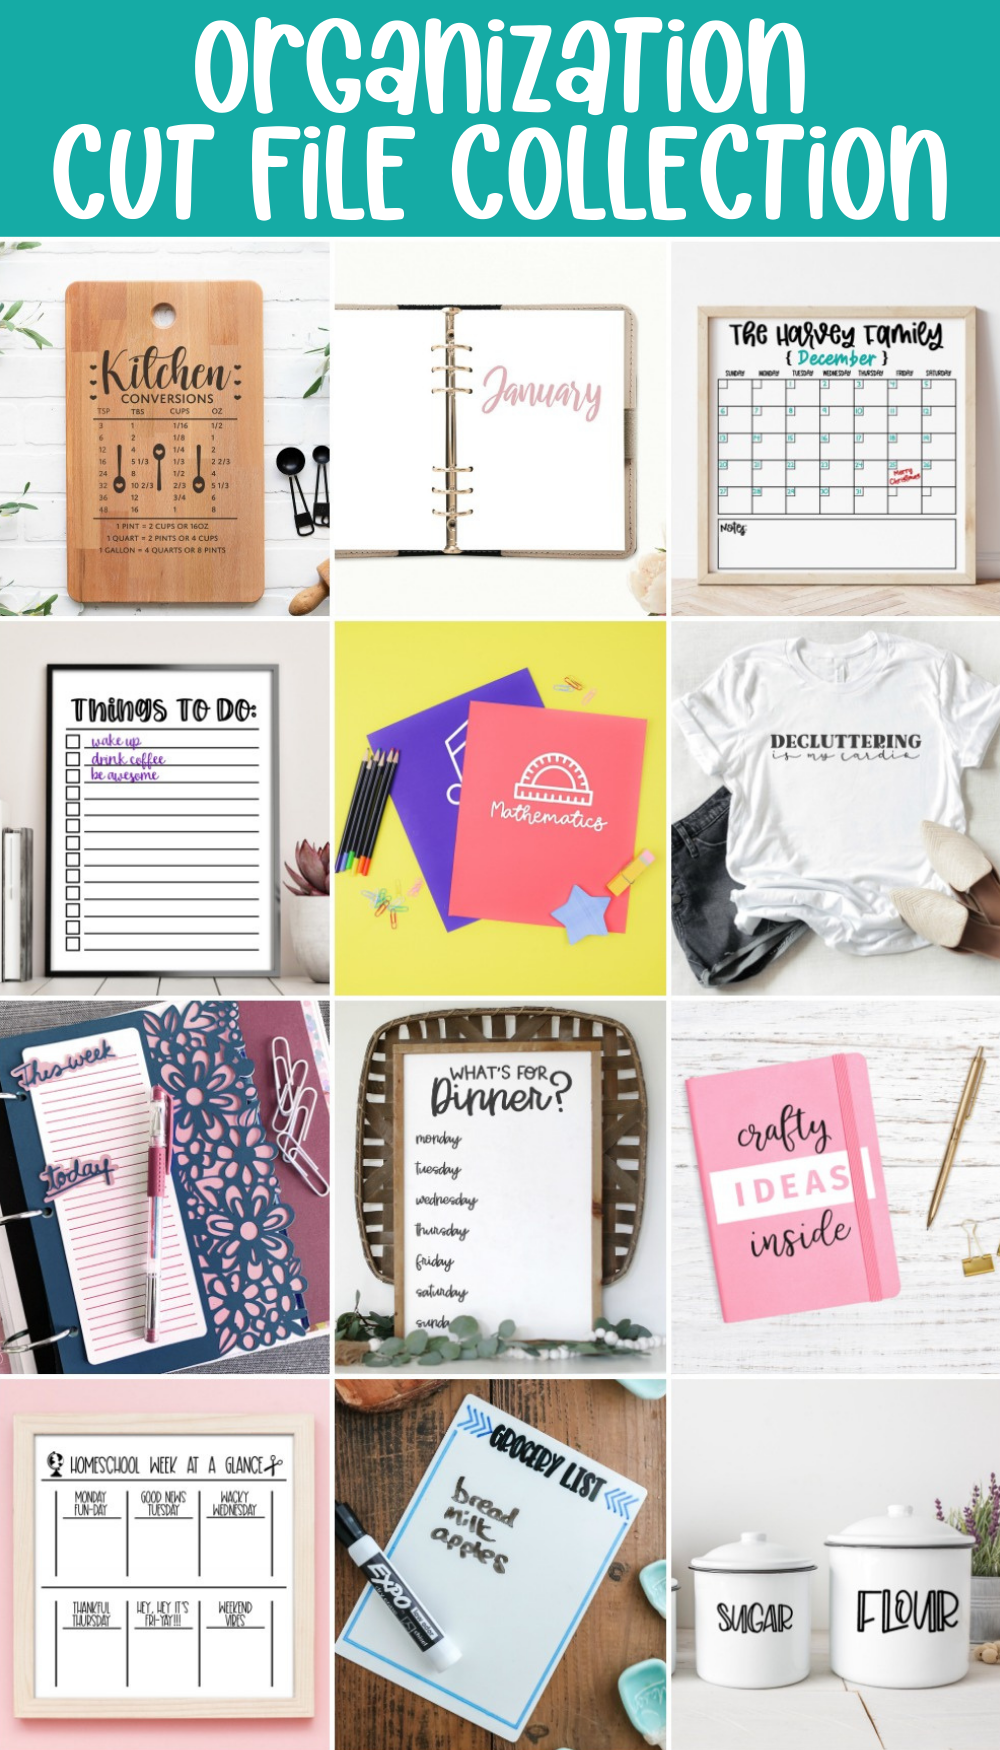 https://www.happygoluckyblog.com/wp-content/uploads/2020/12/Organization-Cut-File-Collection.png